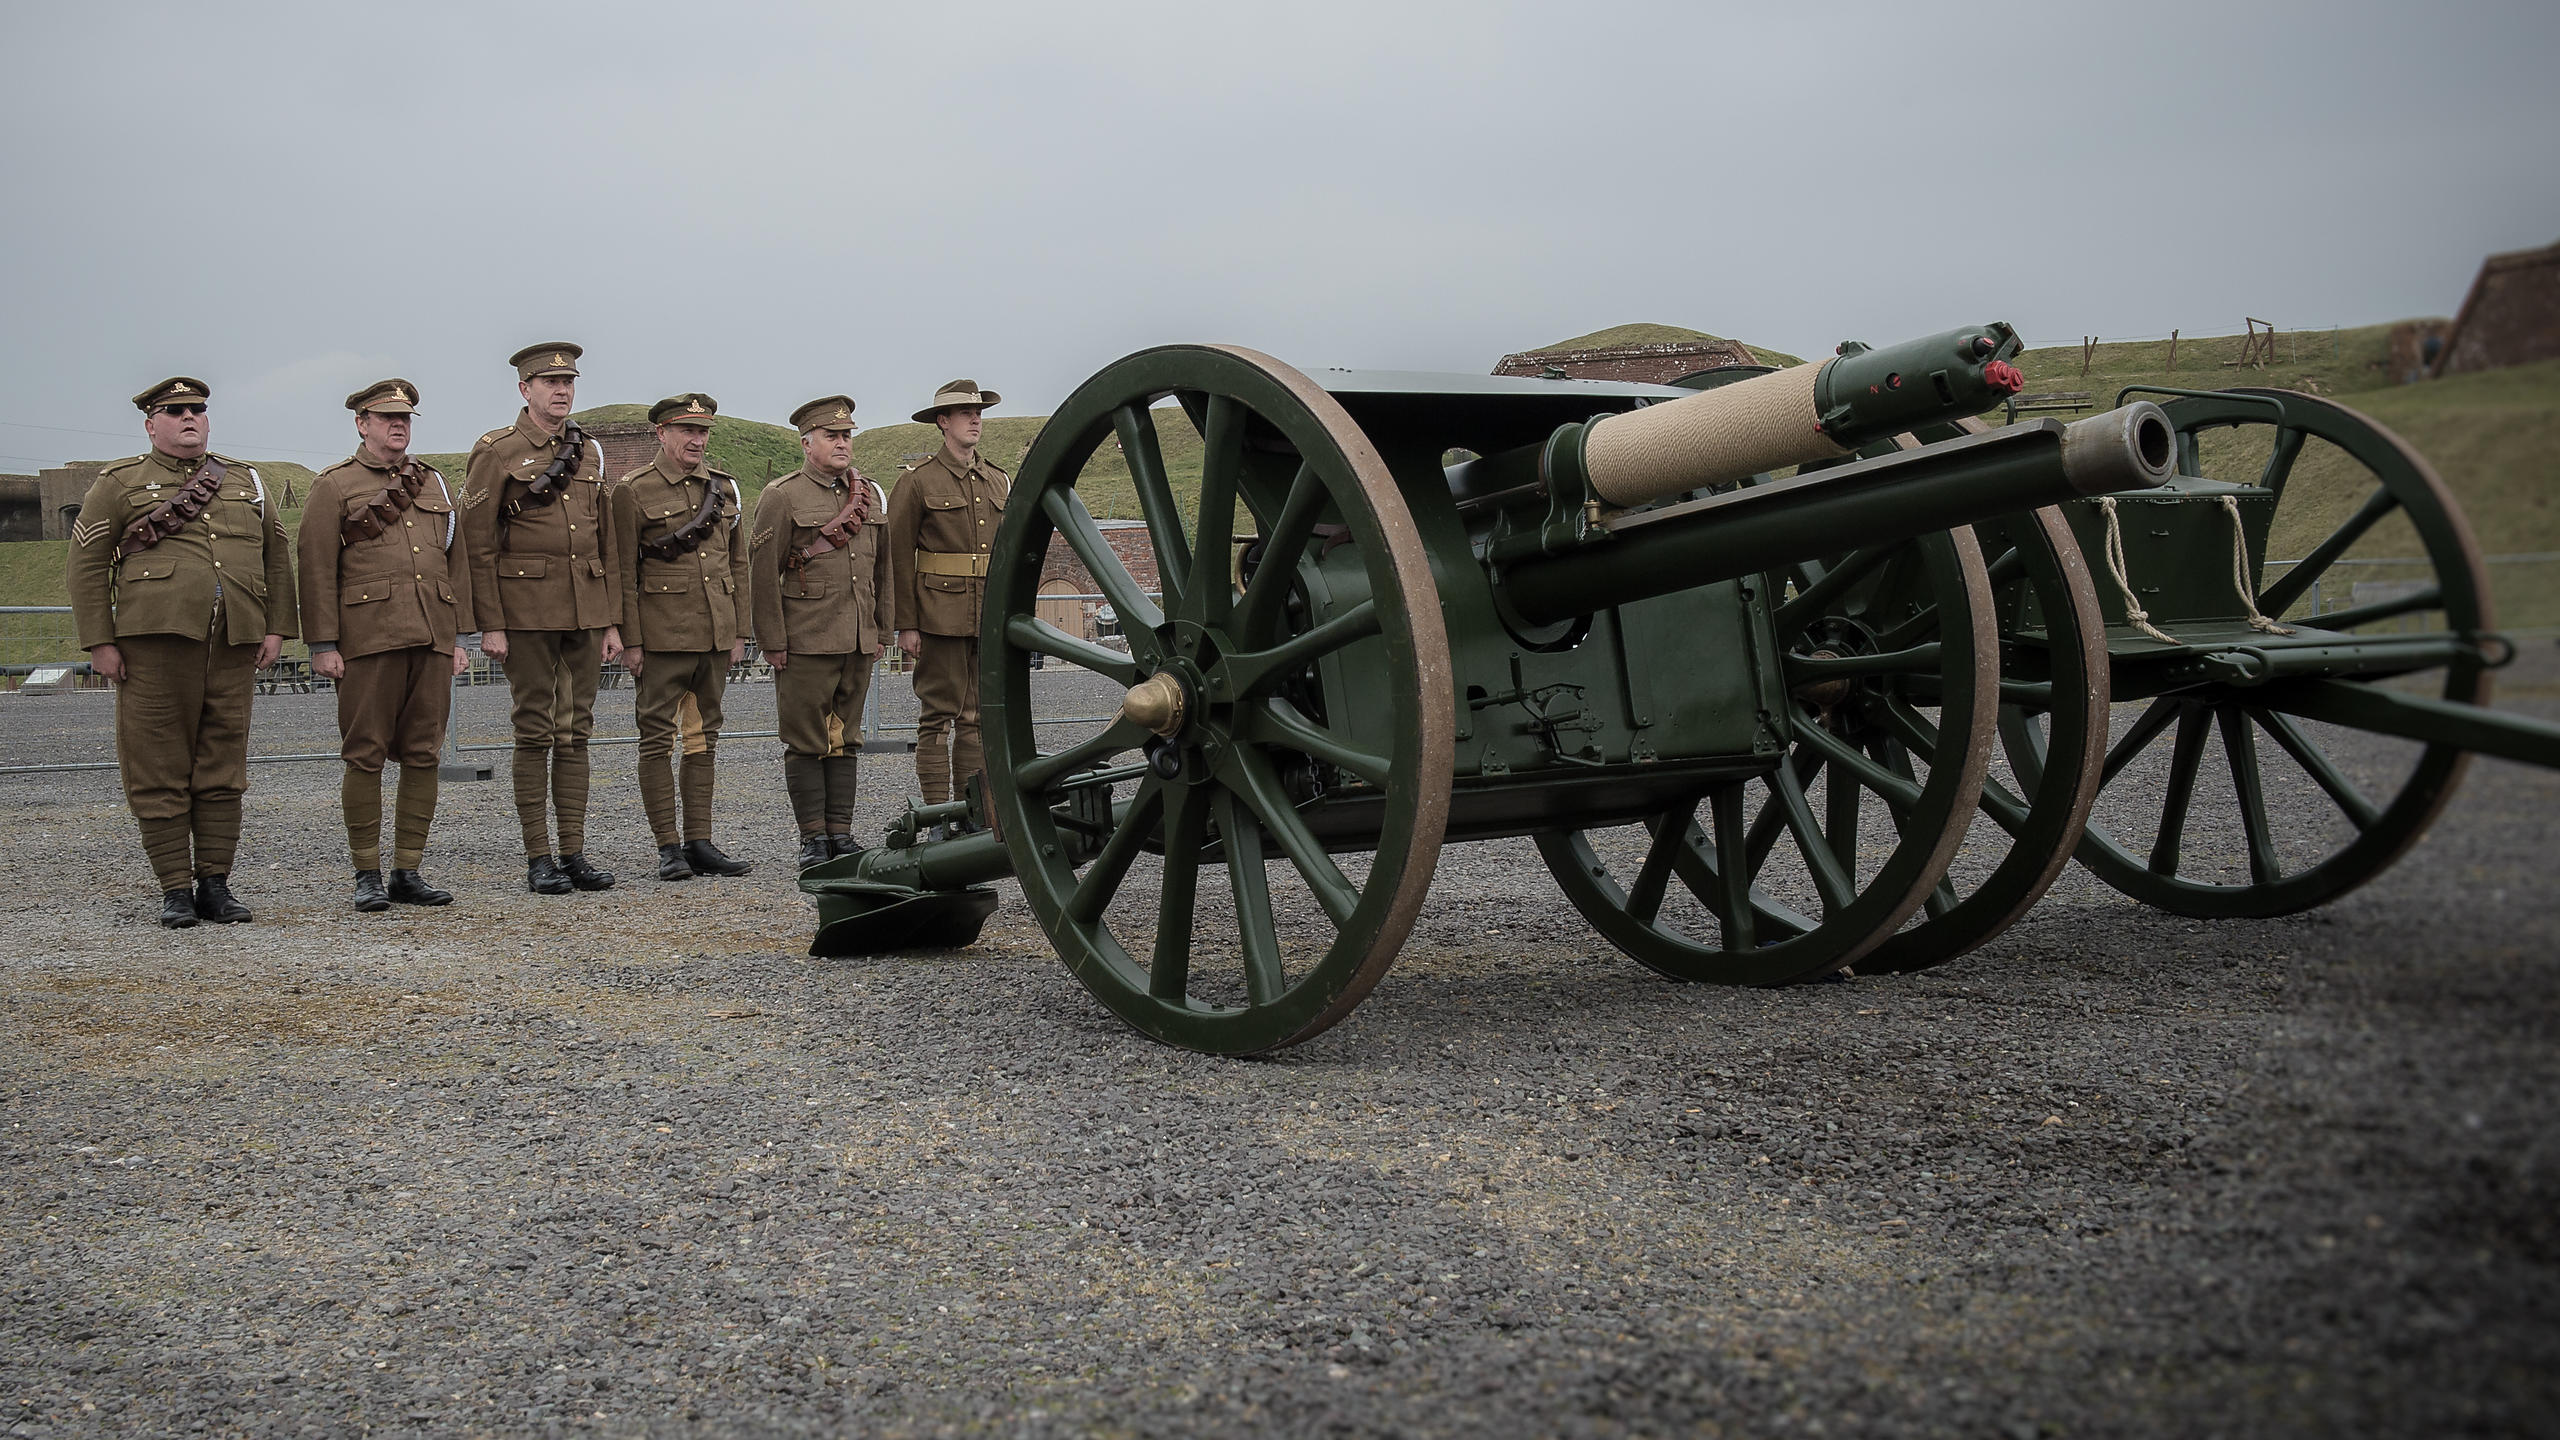 WW1 Battle Re-Enactors Firing Cannon at Fort Nelson, Hampshire